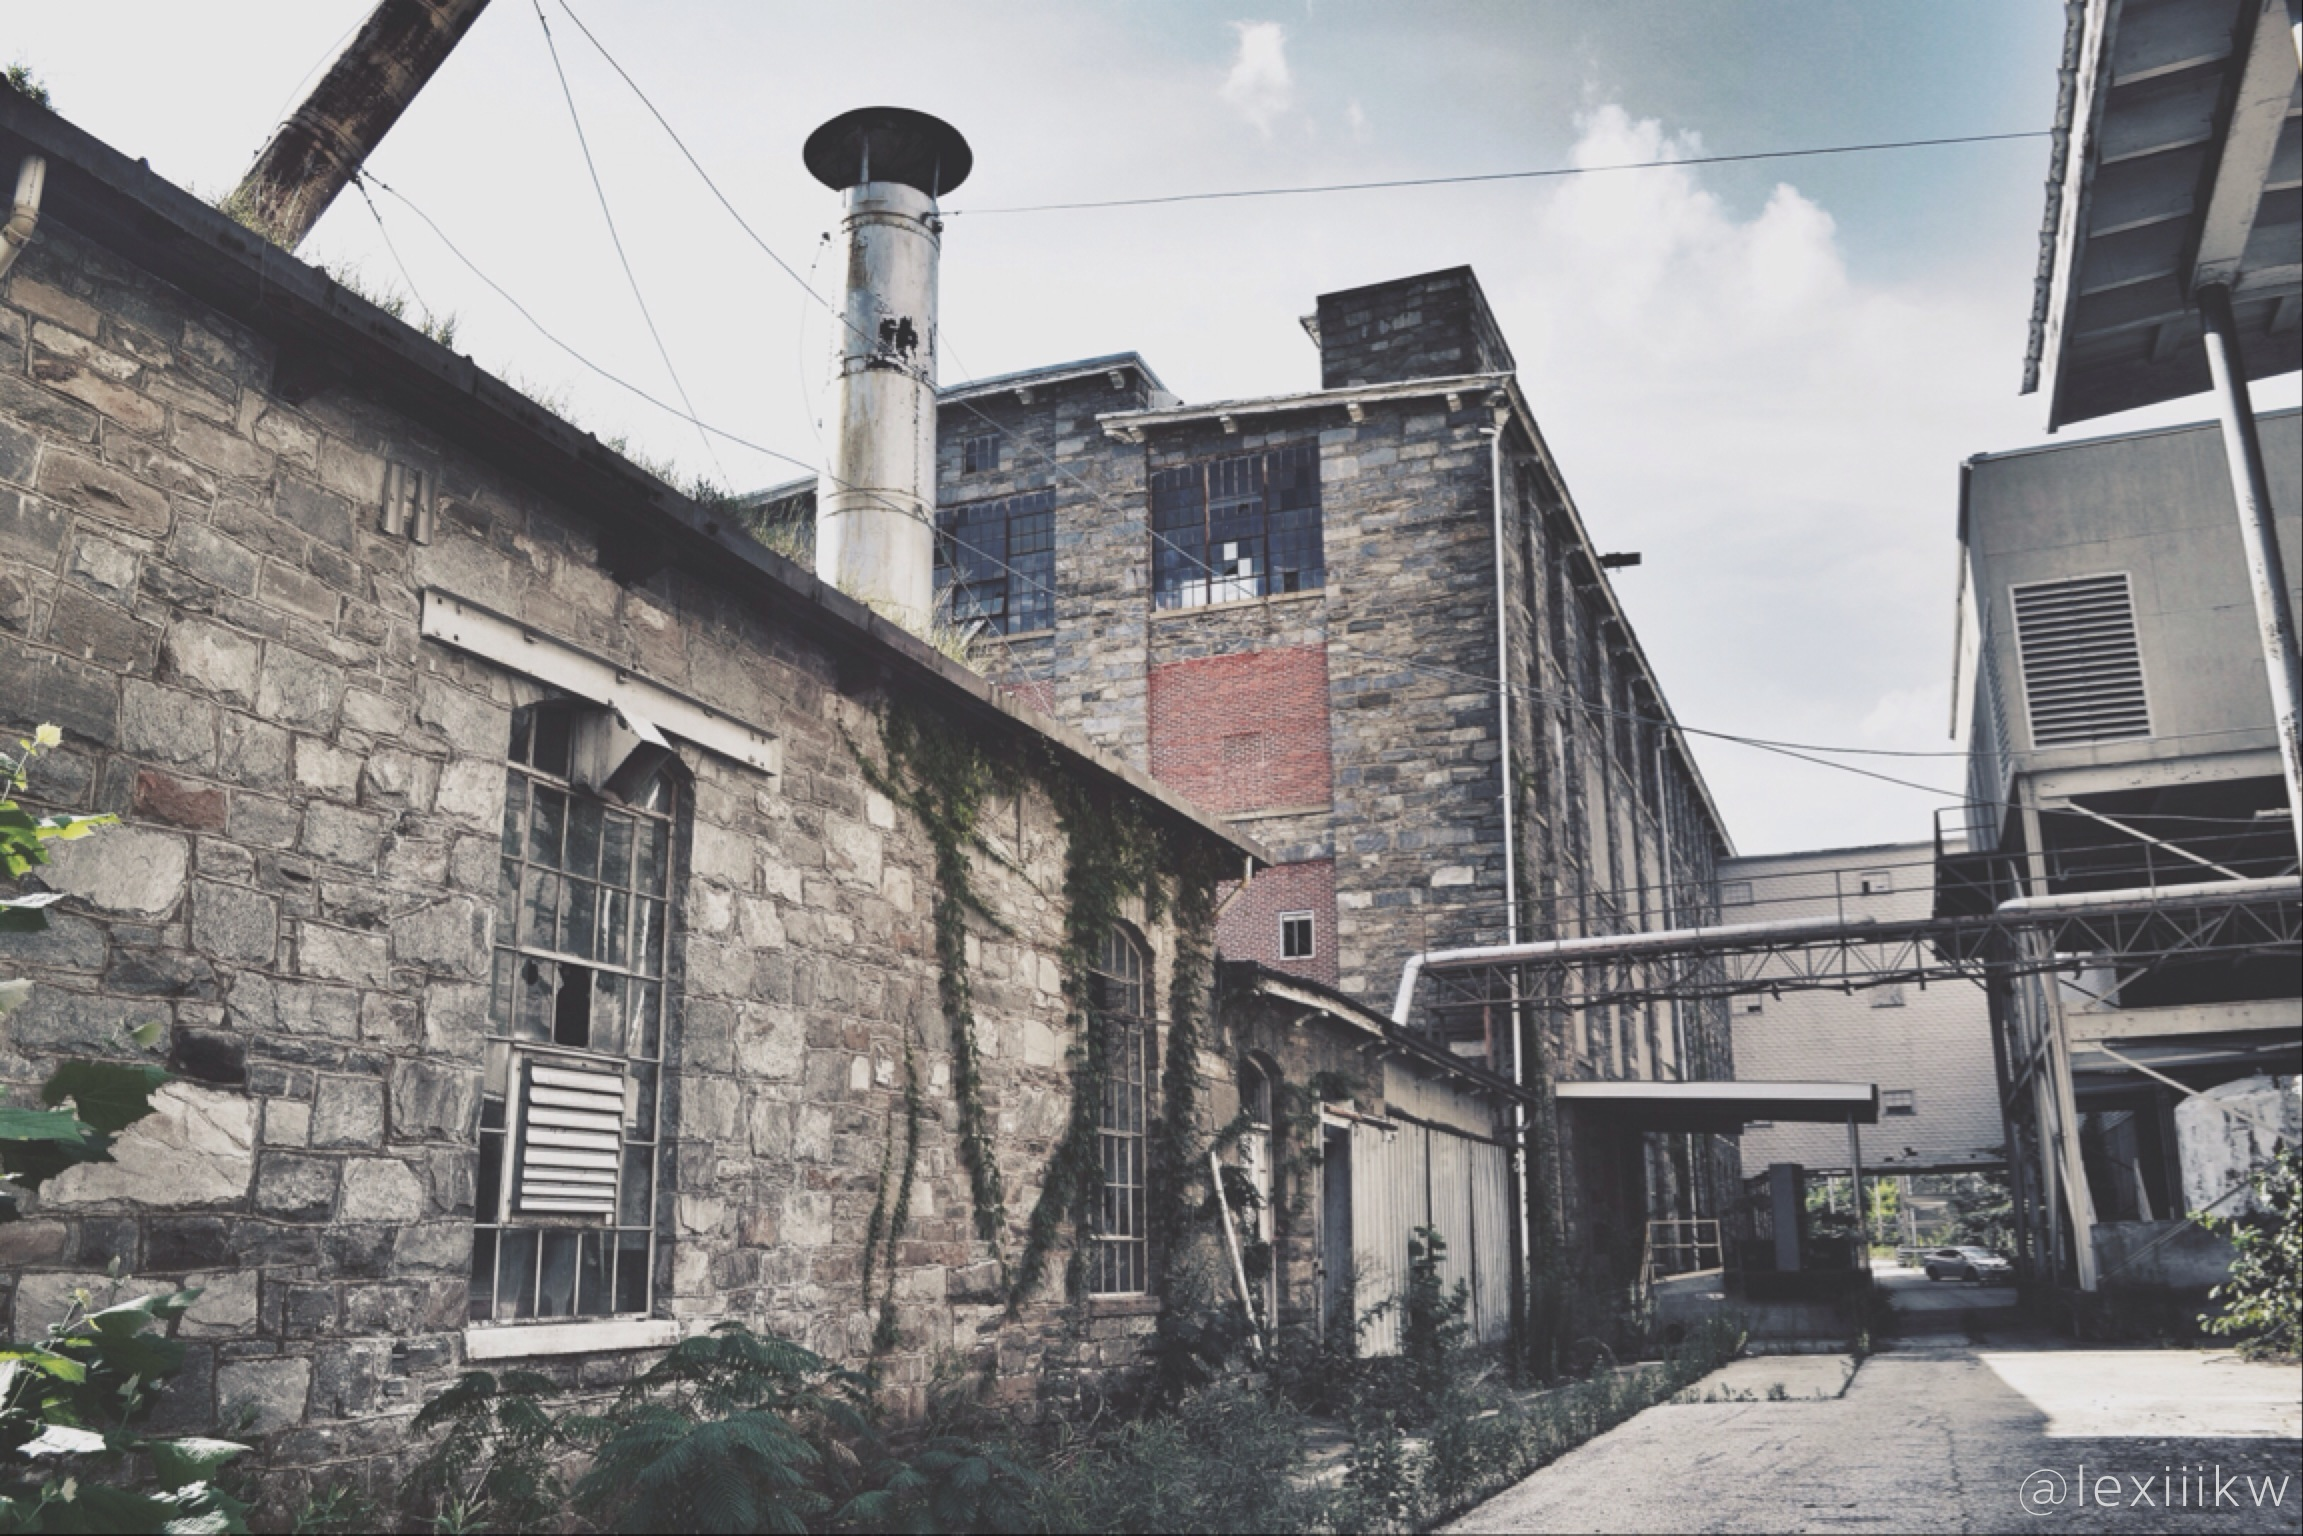 Mt. Vernon Mill, Tallassee, AL • Captured with Nikon D3100 • Edited with Snapseed & VSCOcam